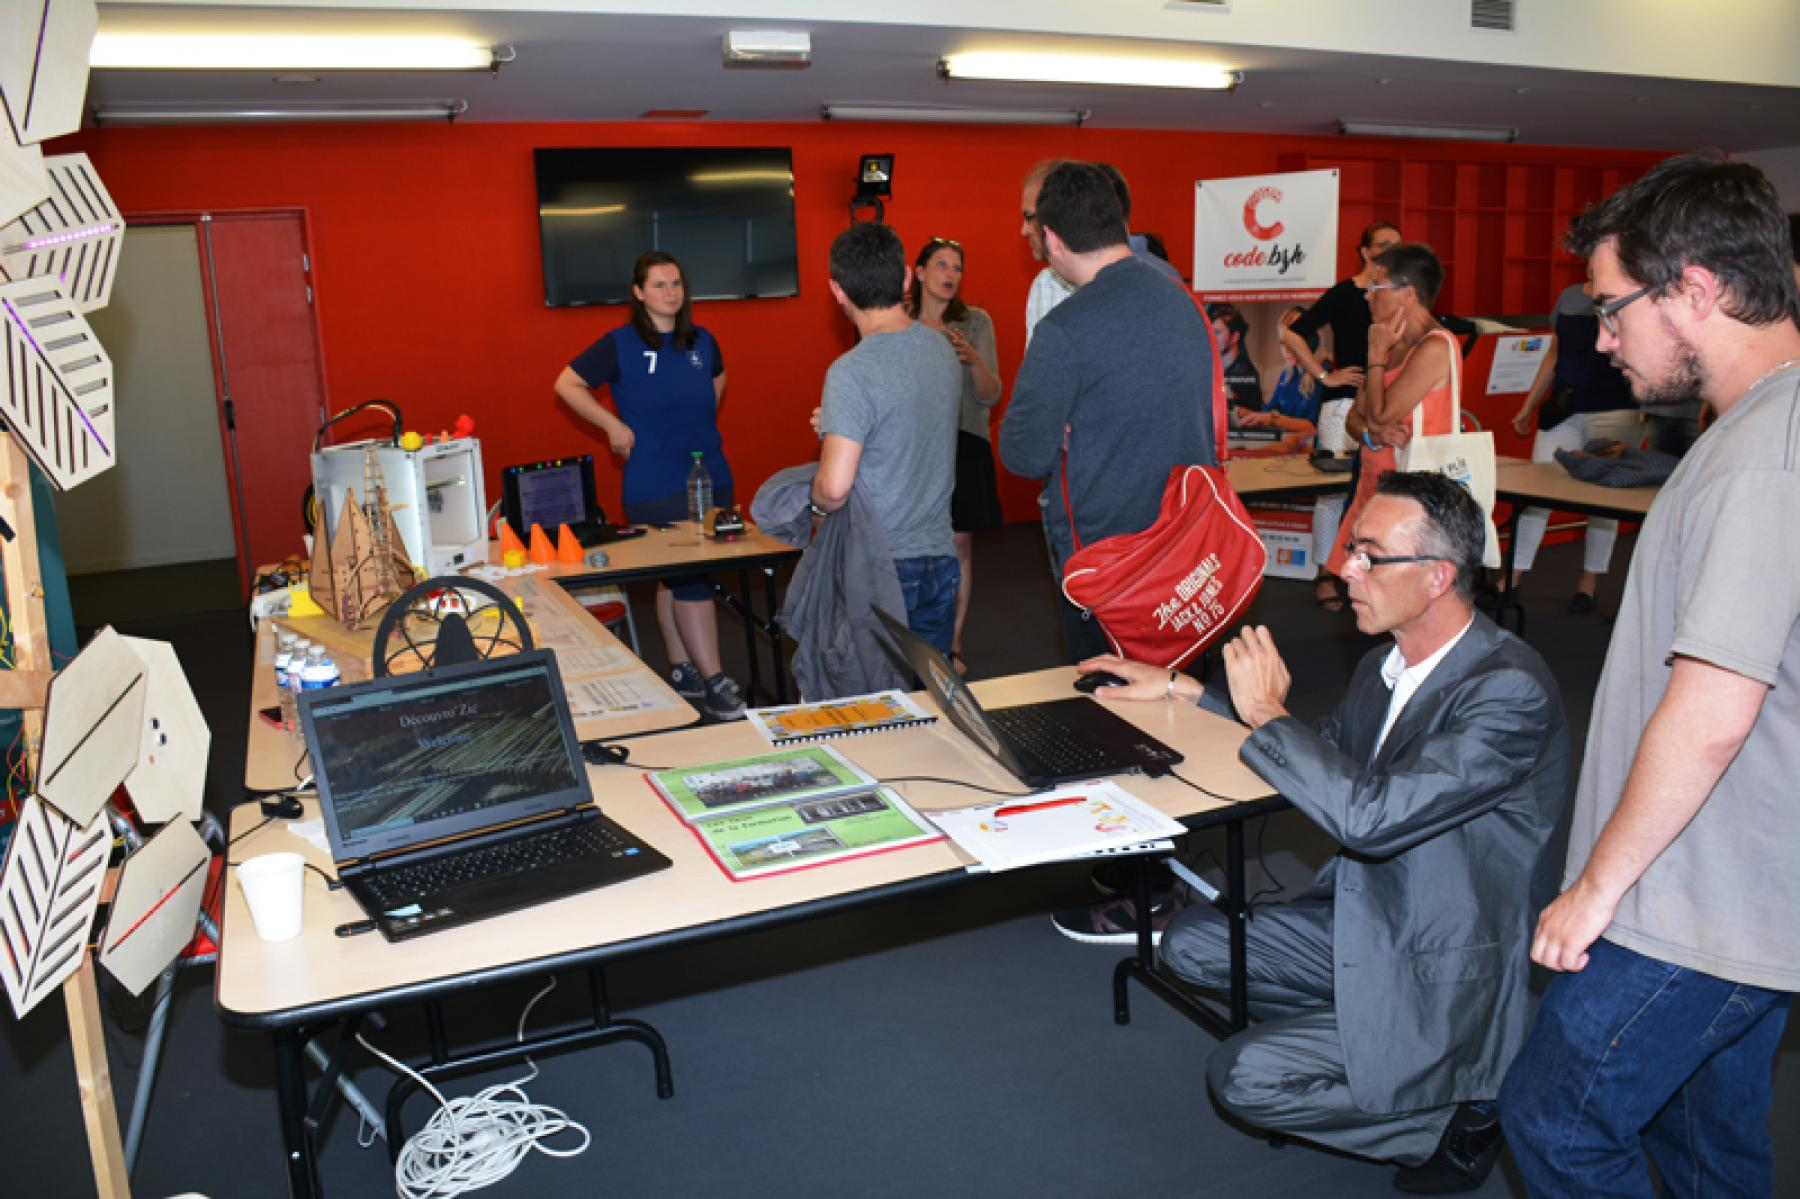 Prospective employees browse stands and displays at the employment event